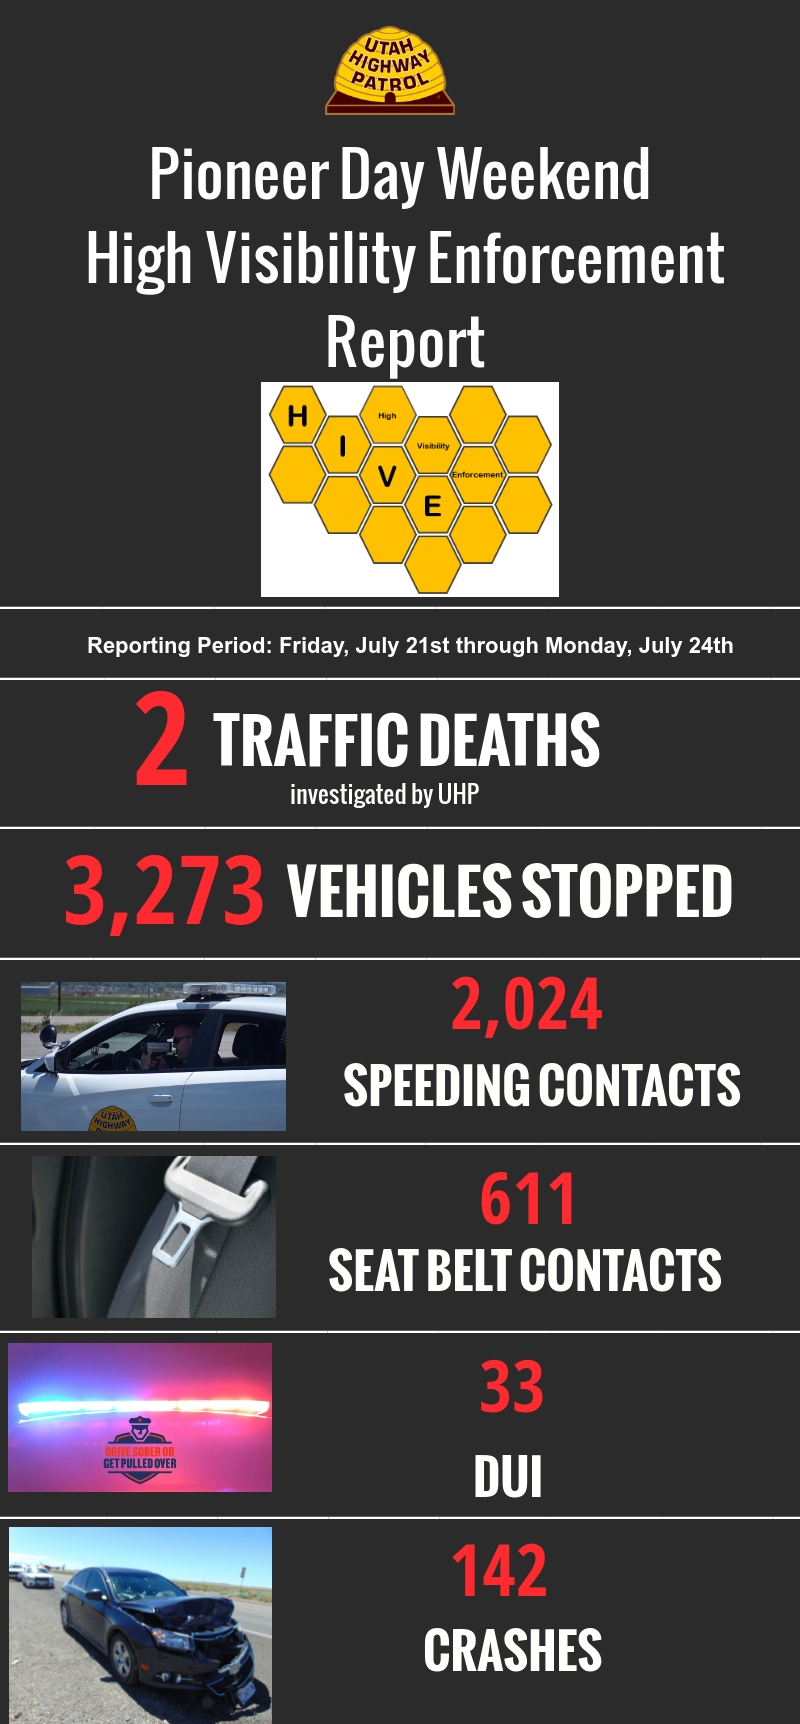 Information about UHP high visibility enforcement results from Pioneer Day weekend.